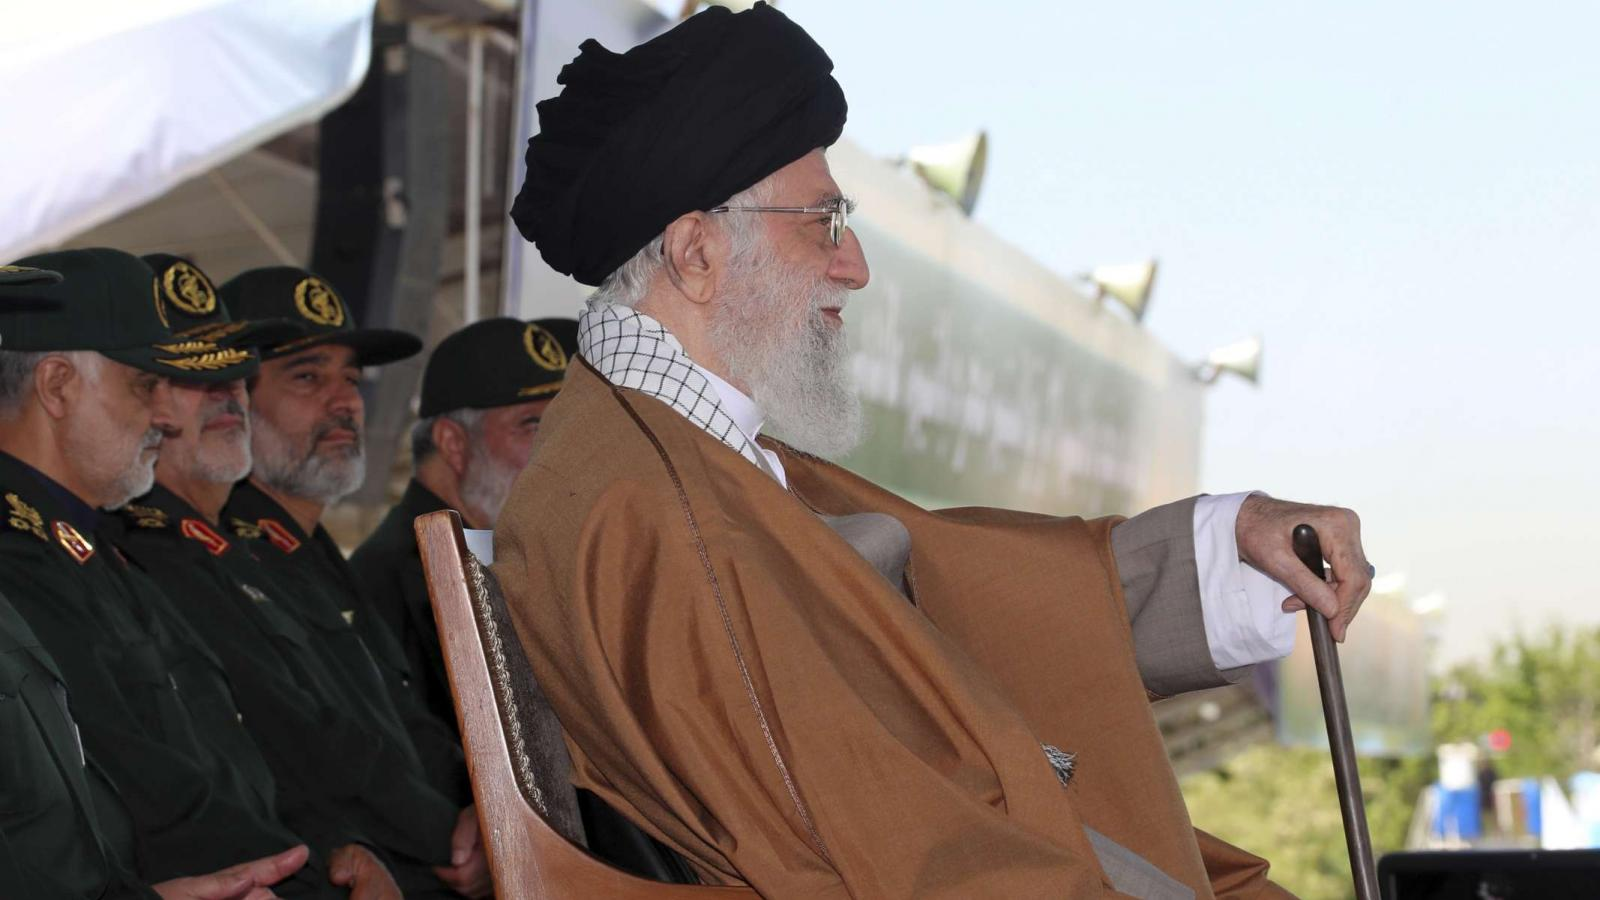 These are the signs that Iran's regime is close to crumbling